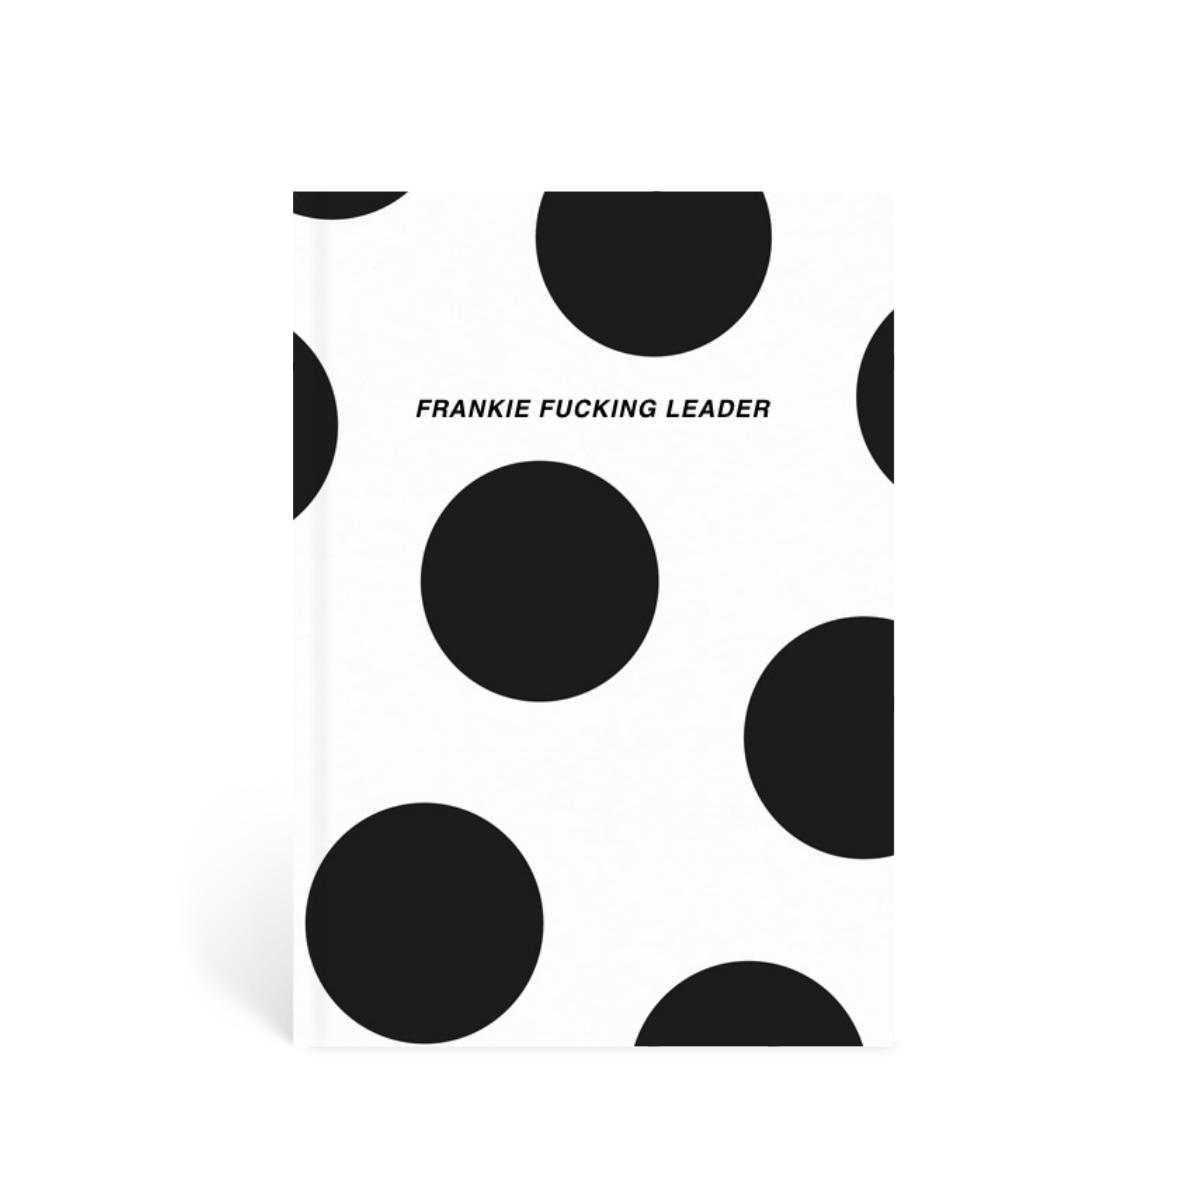 Https%3a%2f%2fwww.papier.com%2fproduct image%2f57111%2f25%2ff king polka dots 13715 front 1542370432.png?ixlib=rb 1.1